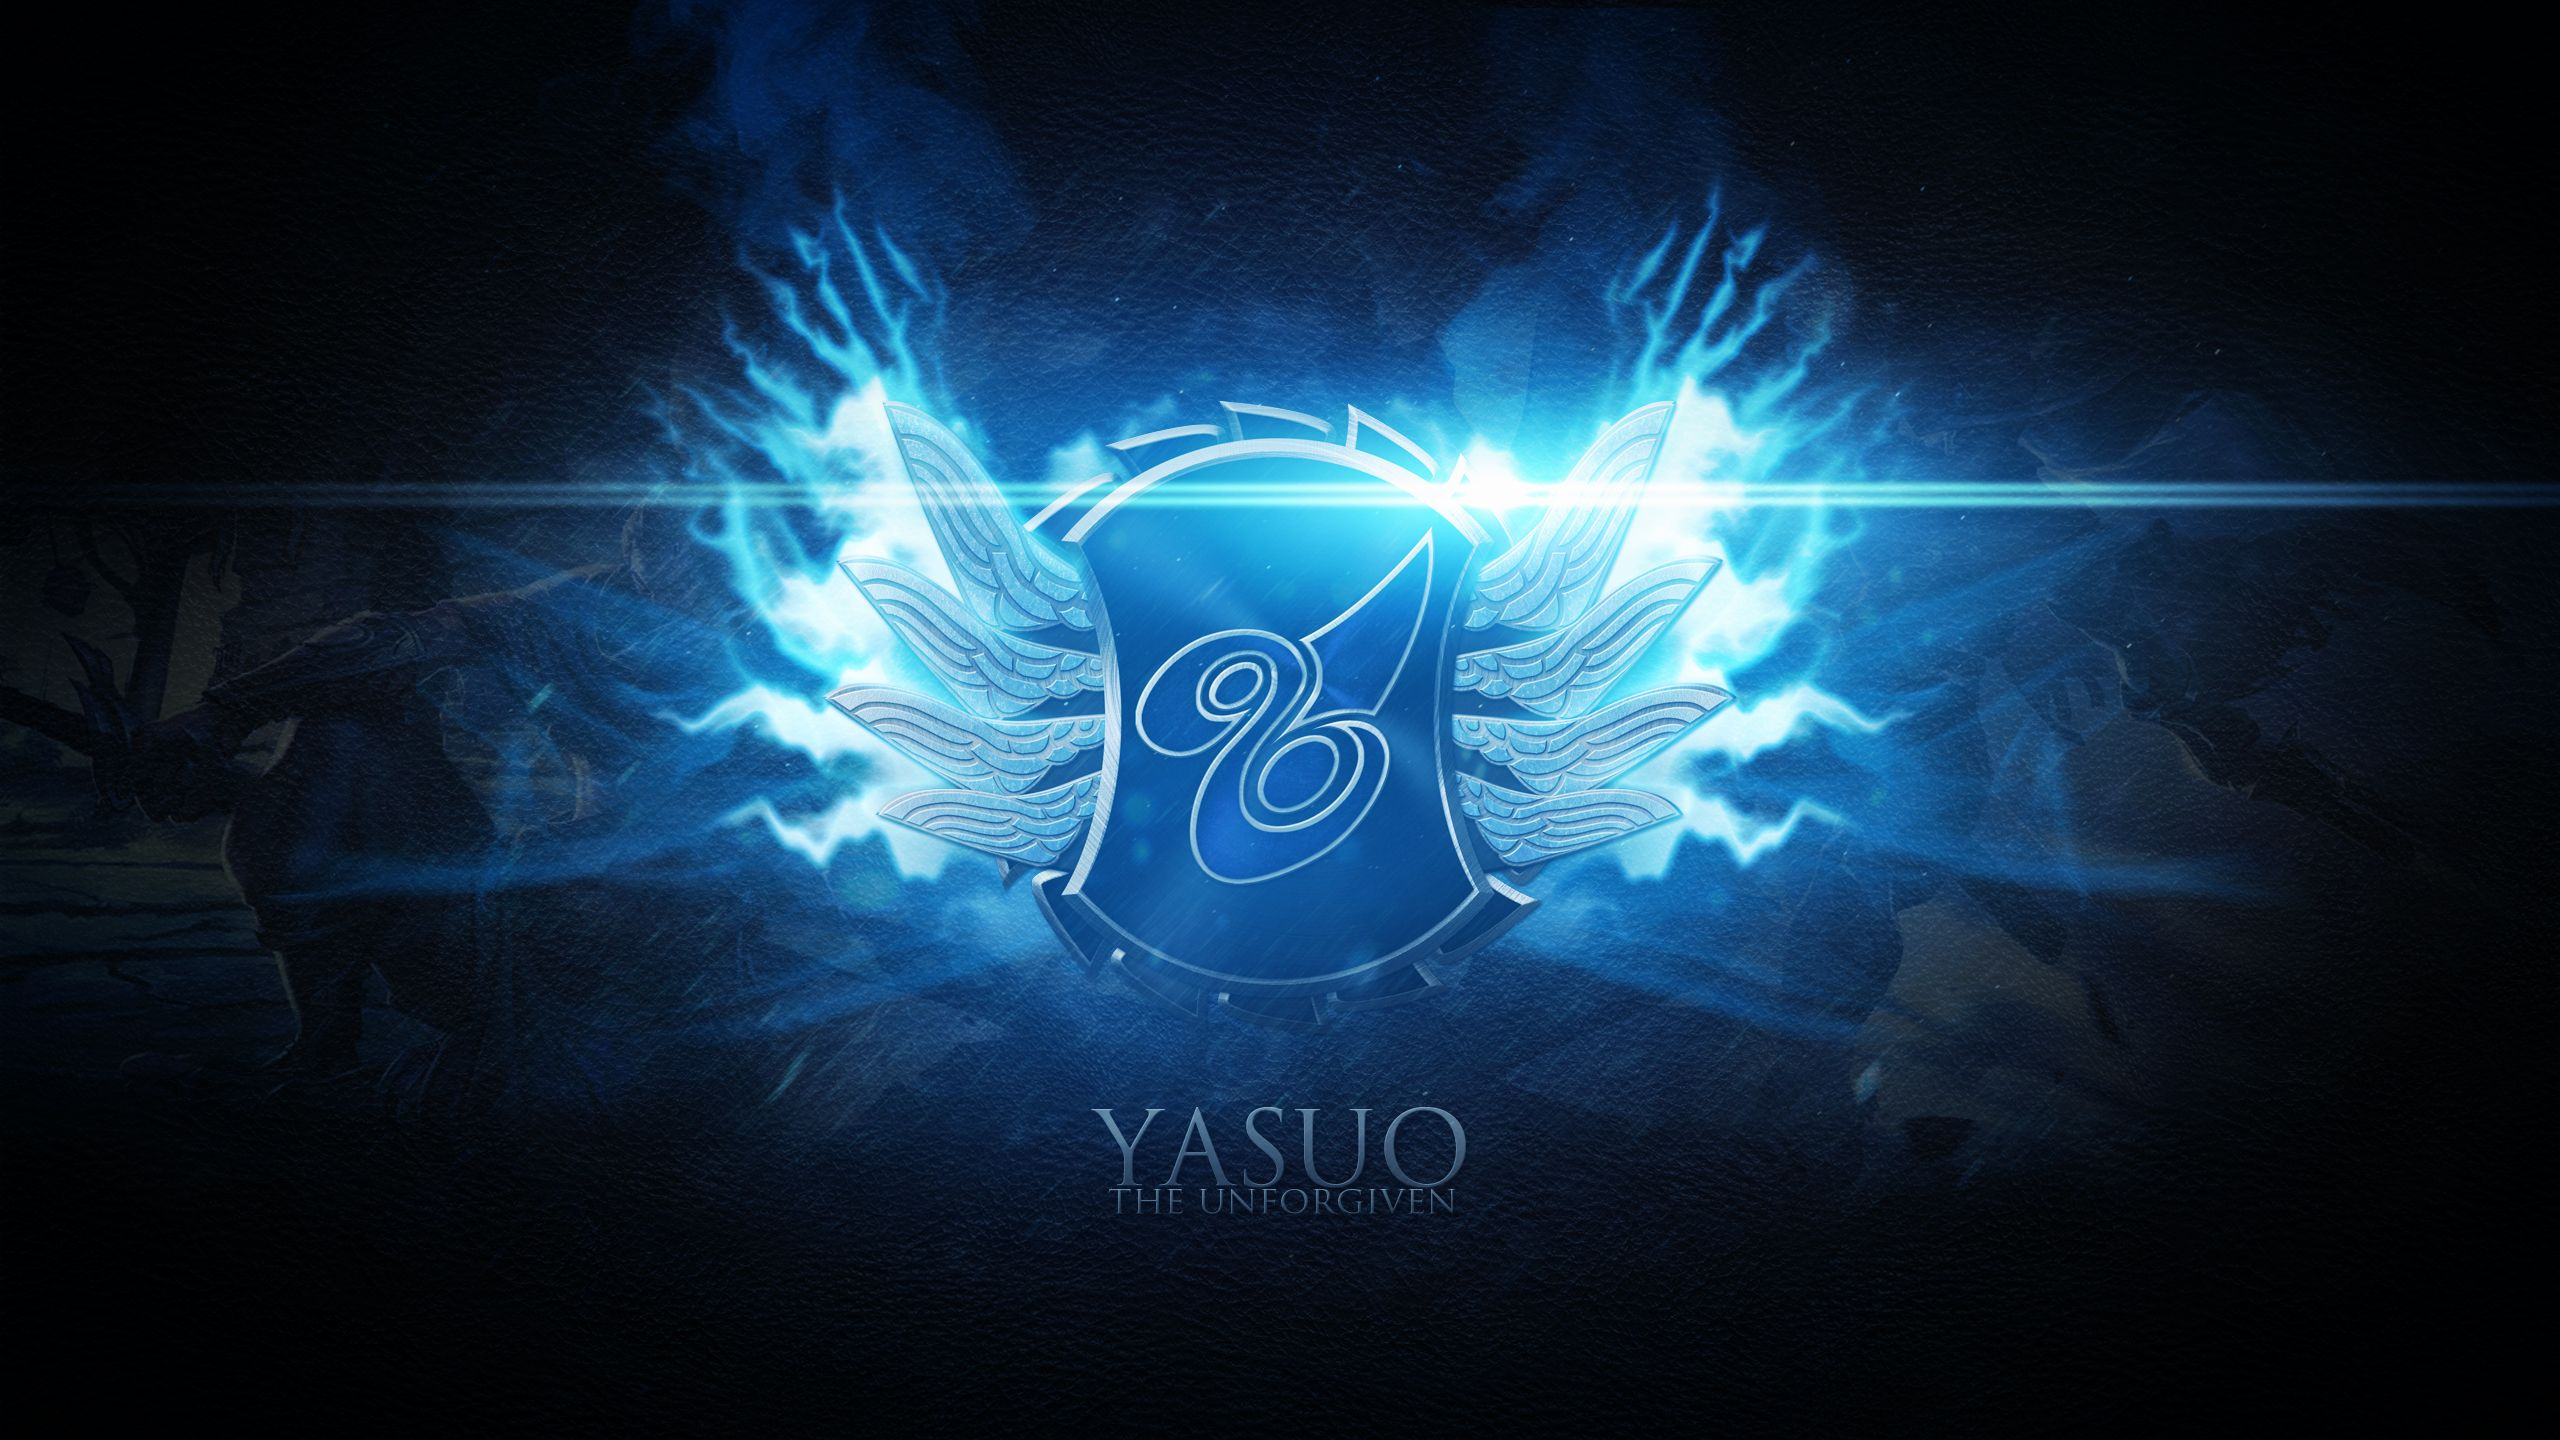 Yasuo League Stuffs League Of Legends Lol League Of Legends